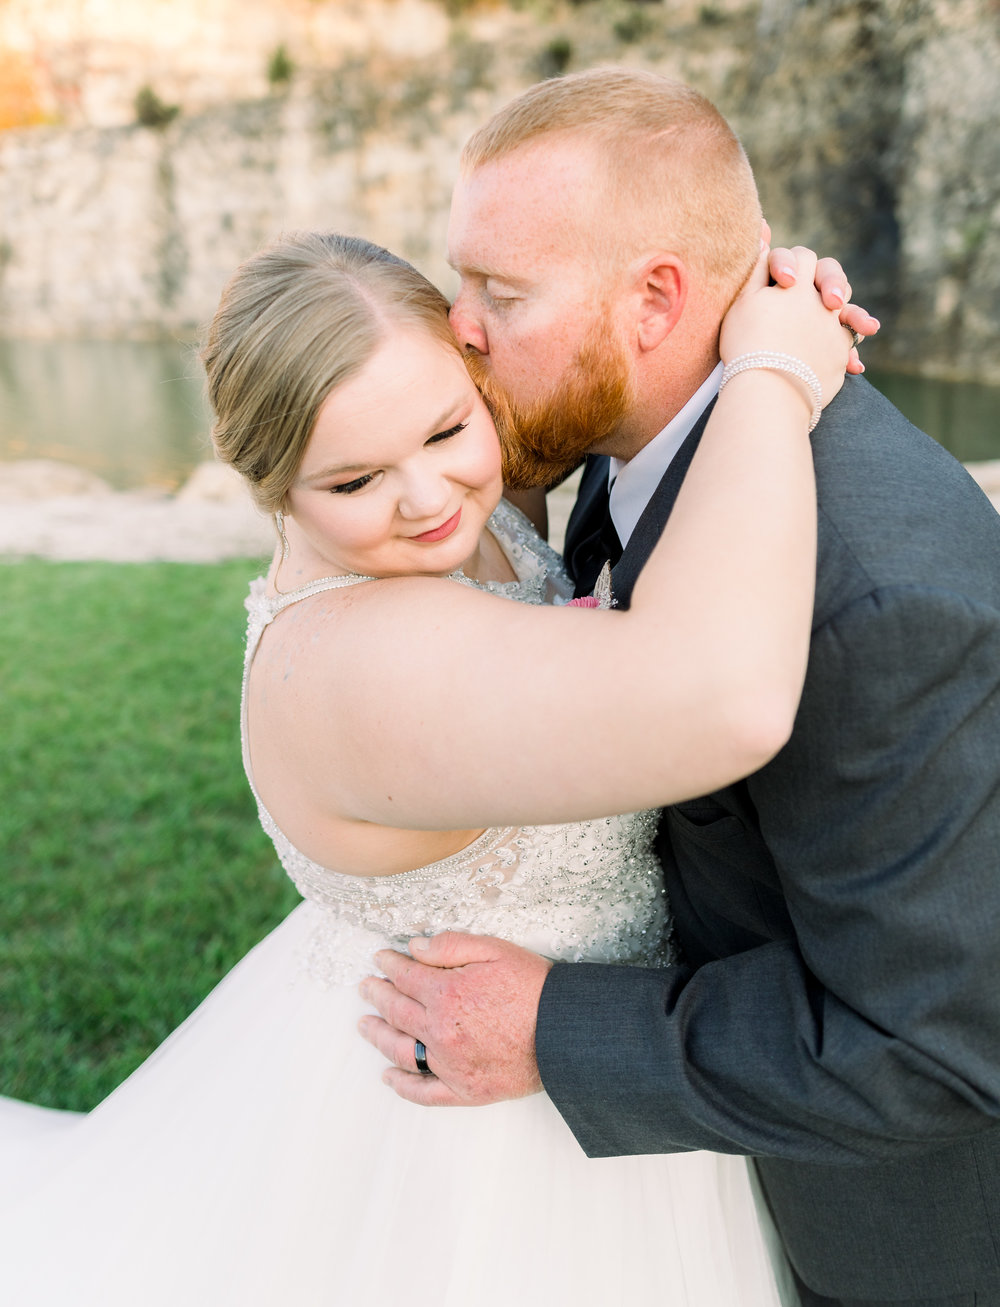 Savanah + Jared (506 of 972).jpg